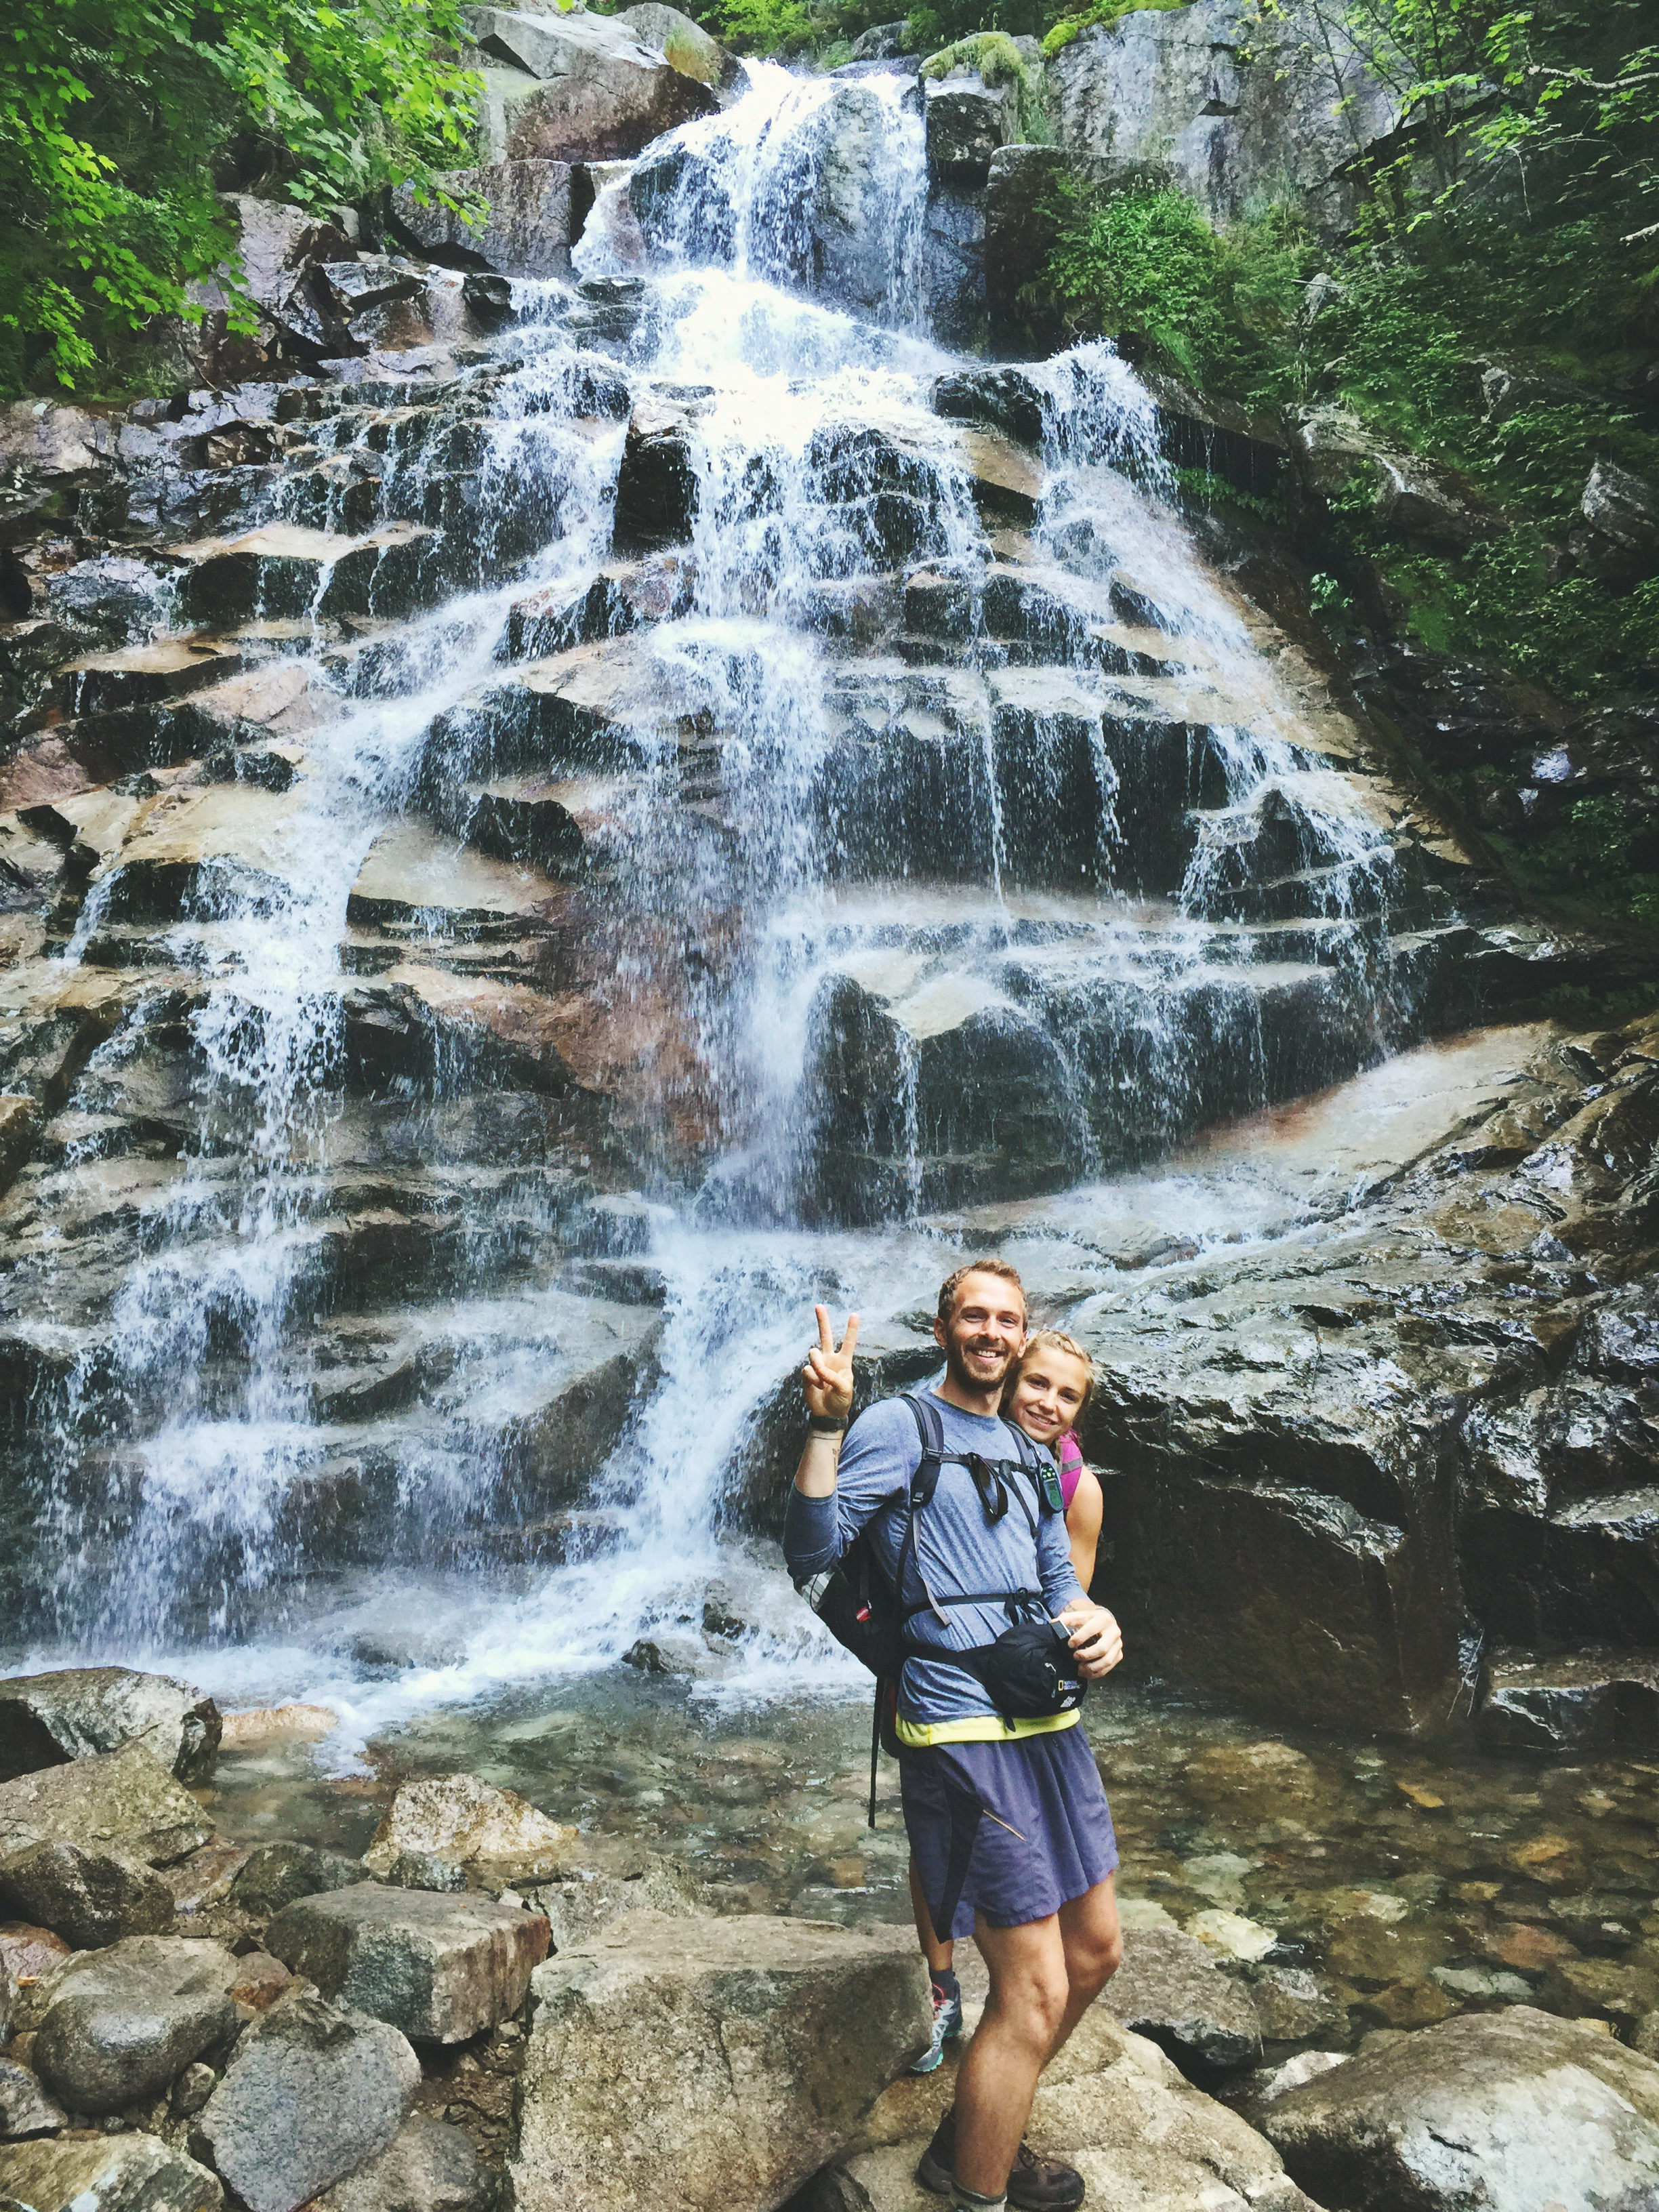 It quickly becomes apparent why it's called the Falling Waters Trail.